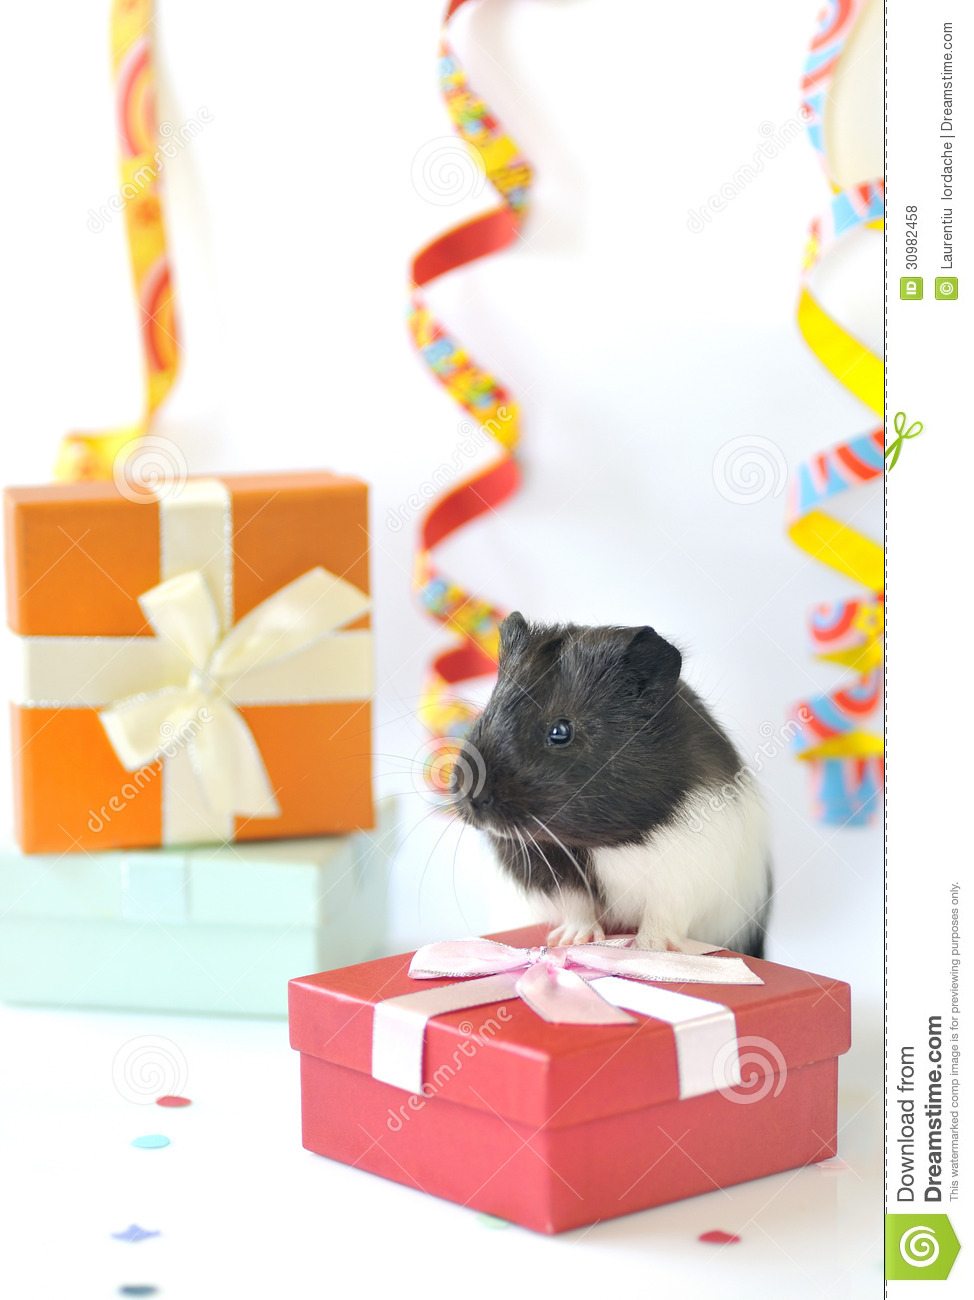 Guinea pig and gifts royalty free stock photos image for Free guinea pig stuff